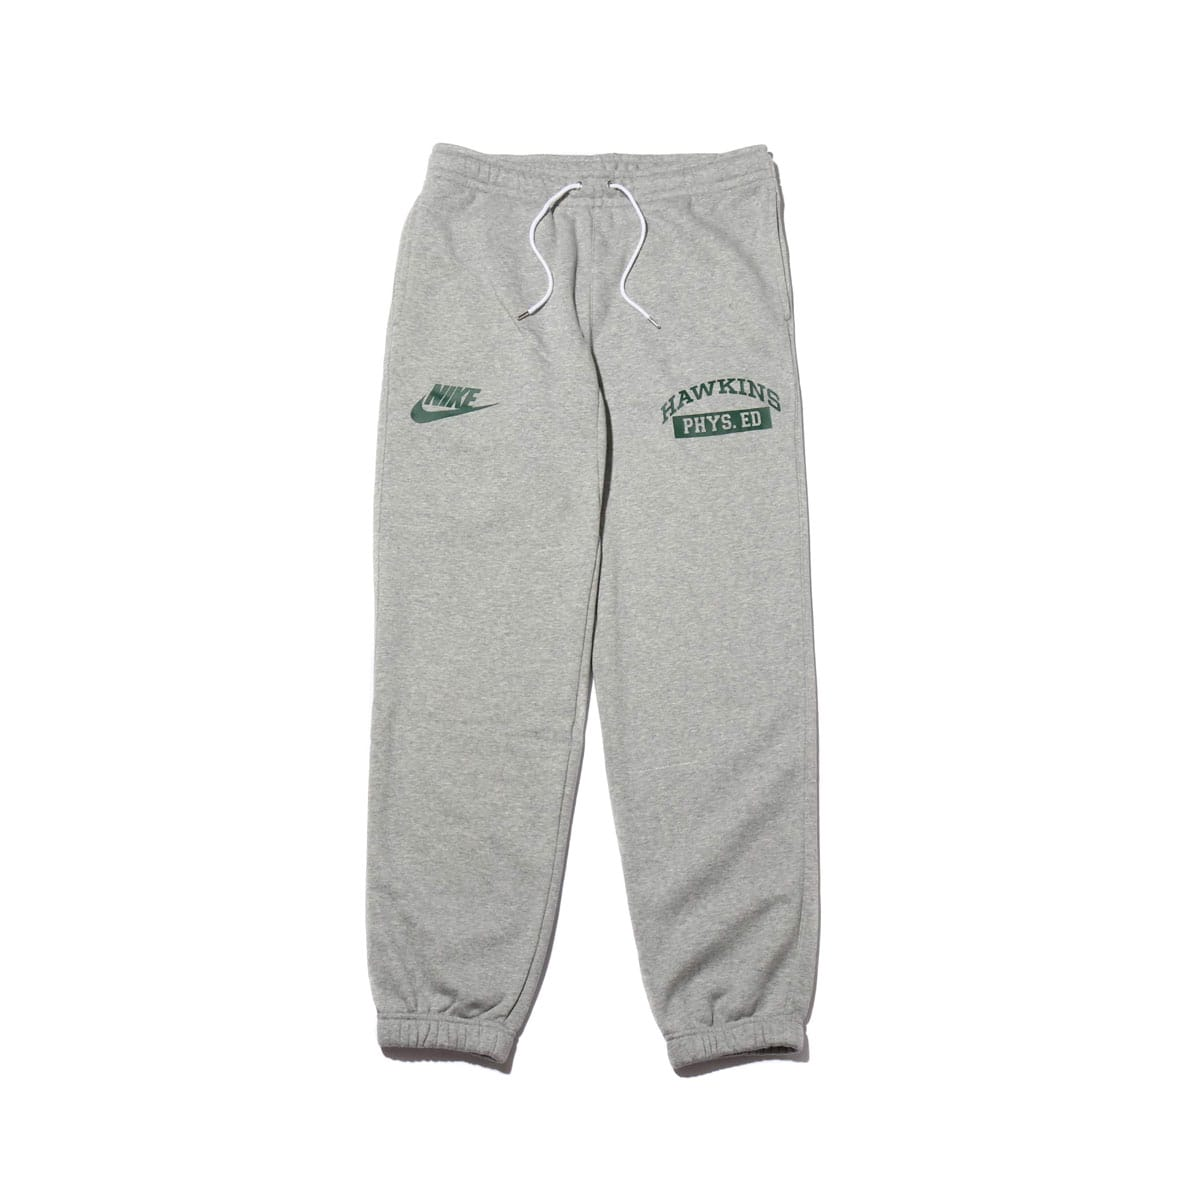 NIKE M NRG CLUB PANT CF BB S.T. DK GREY HEATHER/WHITE/FIR 19SU-S_photo_large